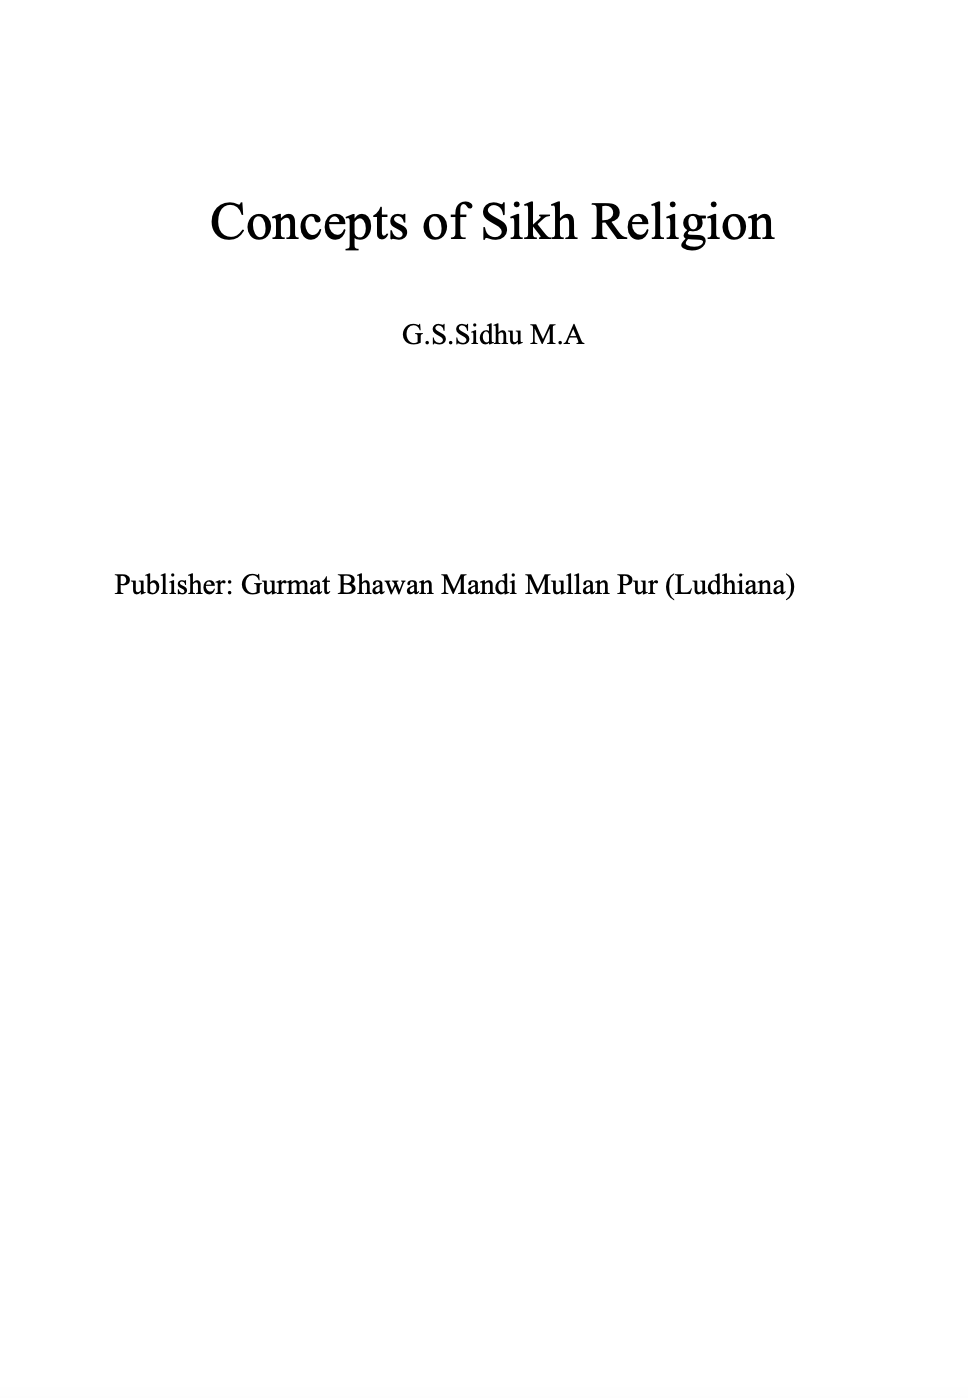 Concepts of Sikh Religion